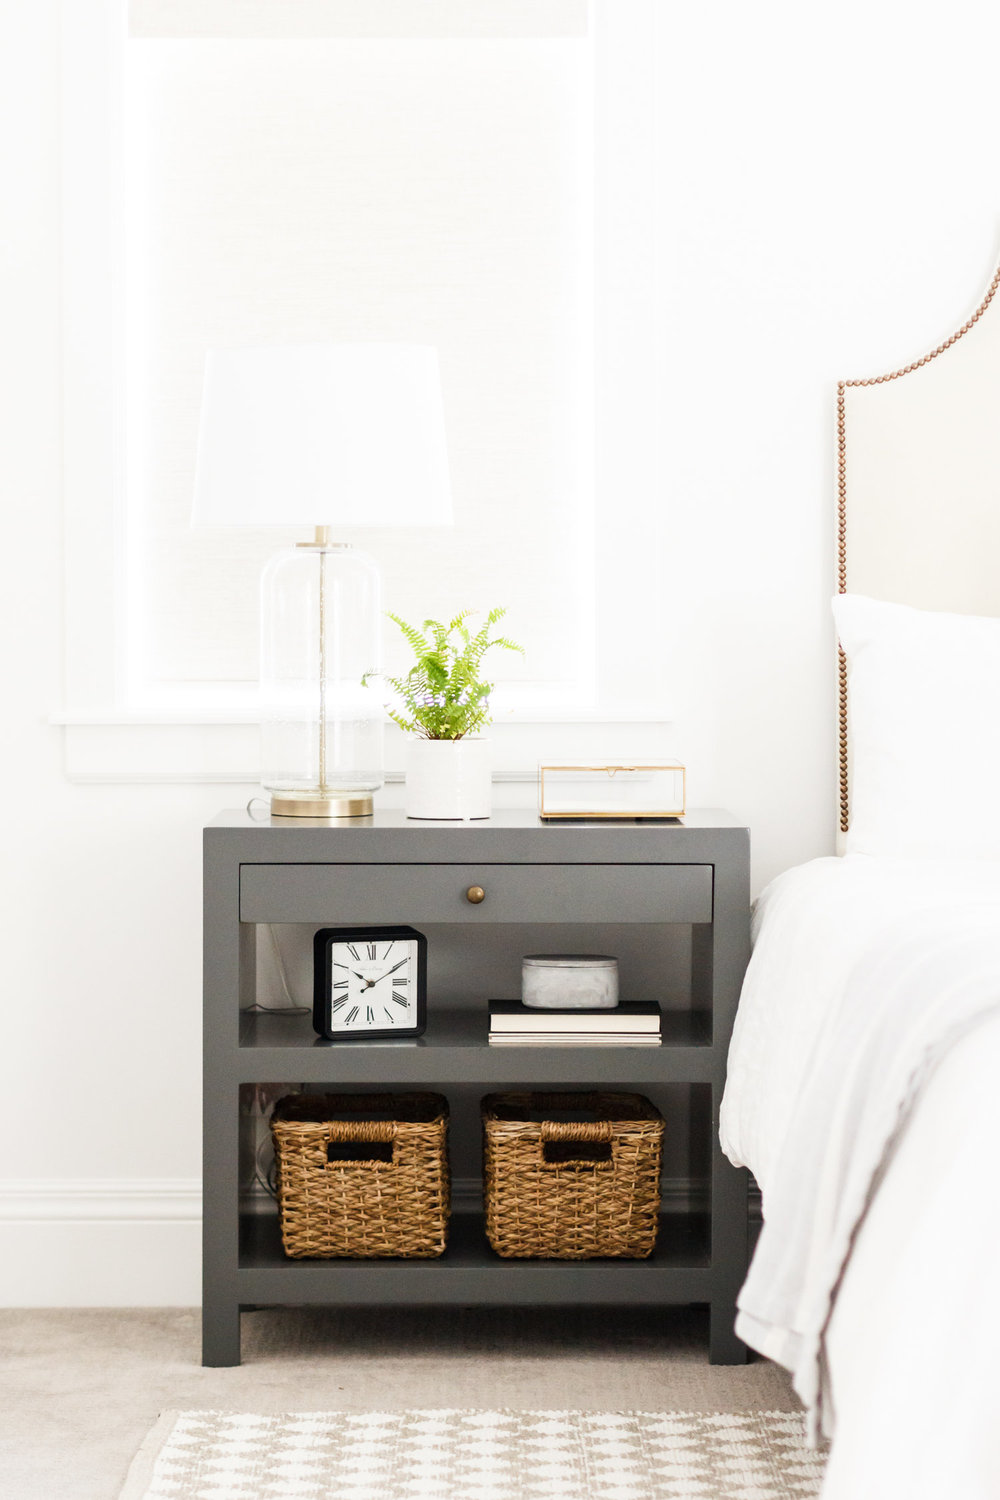 The embellishments on this bed are literally brass tacks. We are crushing hard on the supremely restrained use of brass in this bedroom. From the bed tacks to the bedside table drawer knob to the lamp base, everything has been well thought-through and delivered with intention. #love